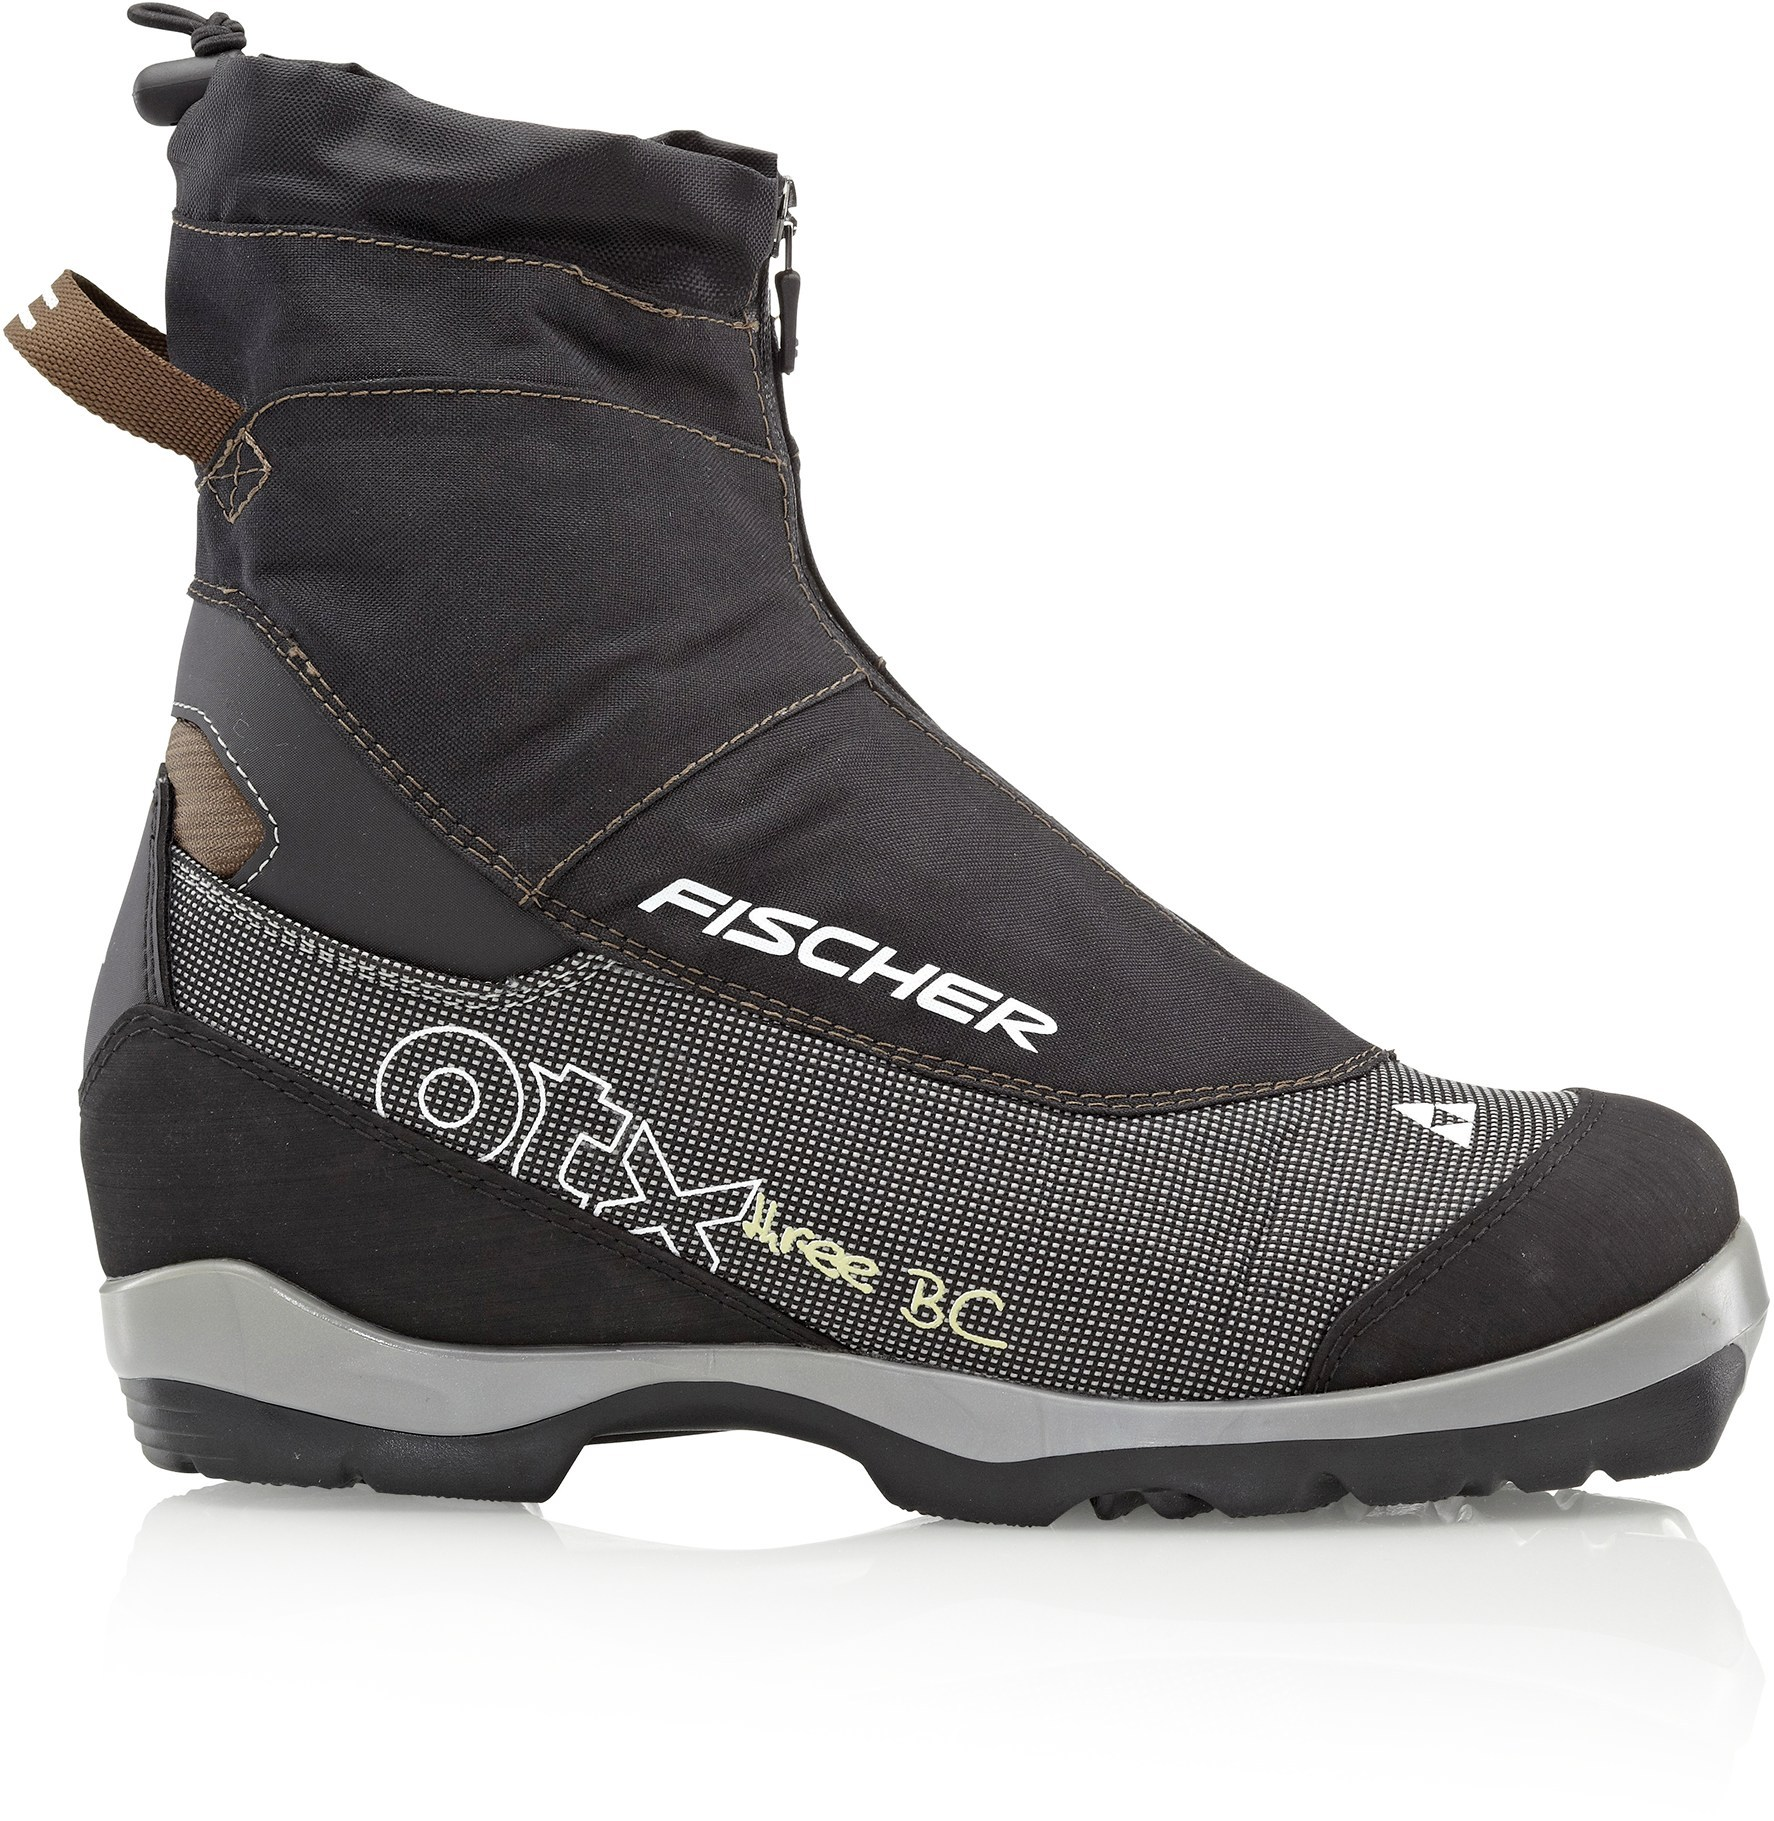 Fischer Offtrack 3 BC Cross-Country Ski Boots